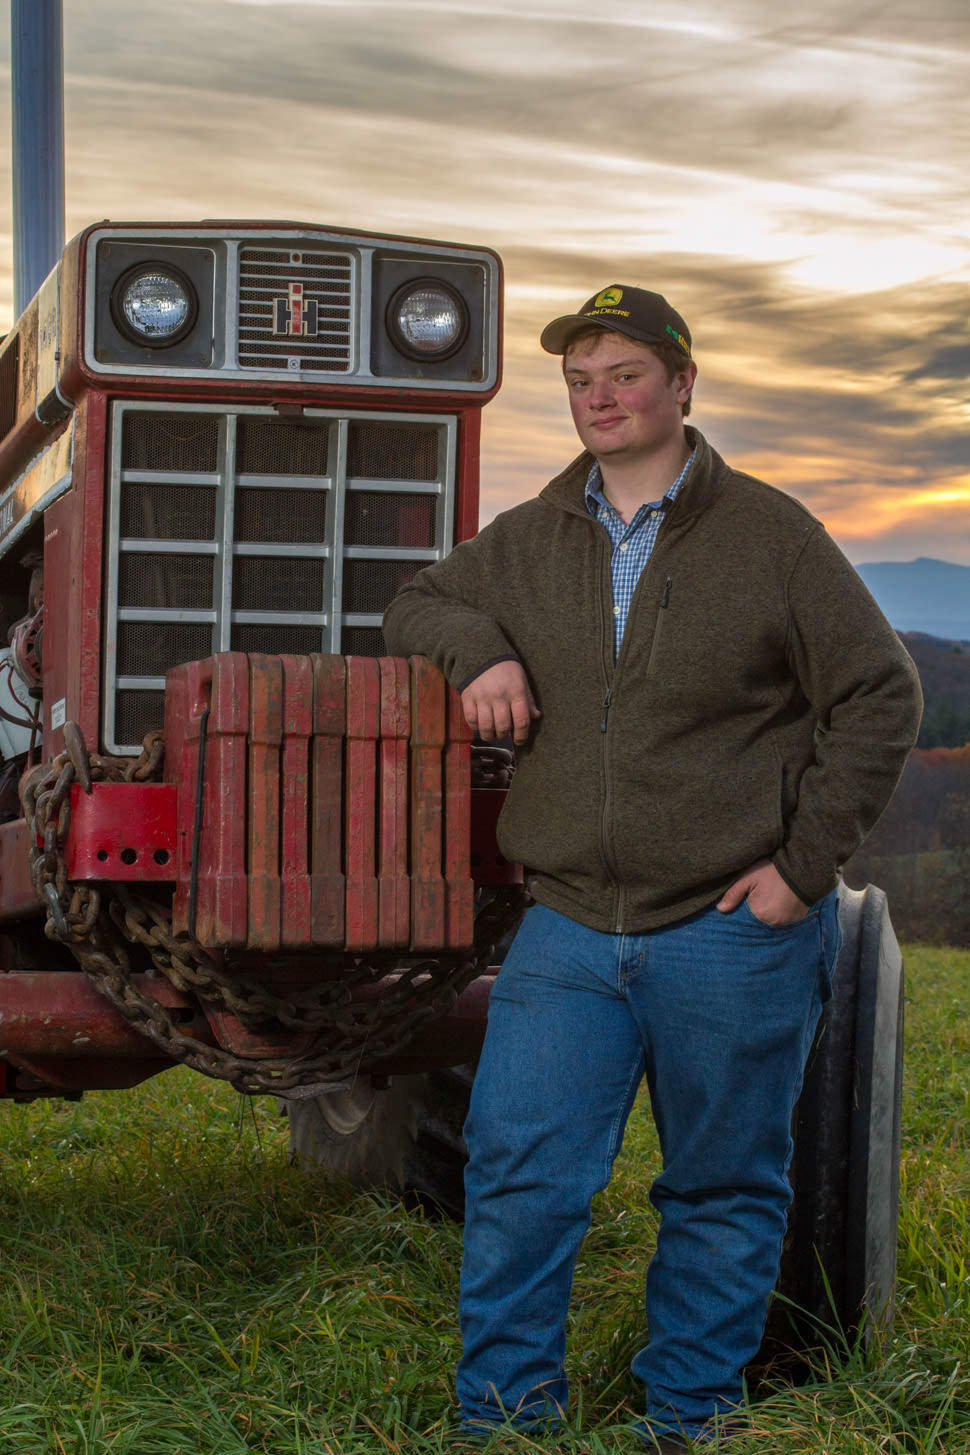 Senior Portrait with Tractor